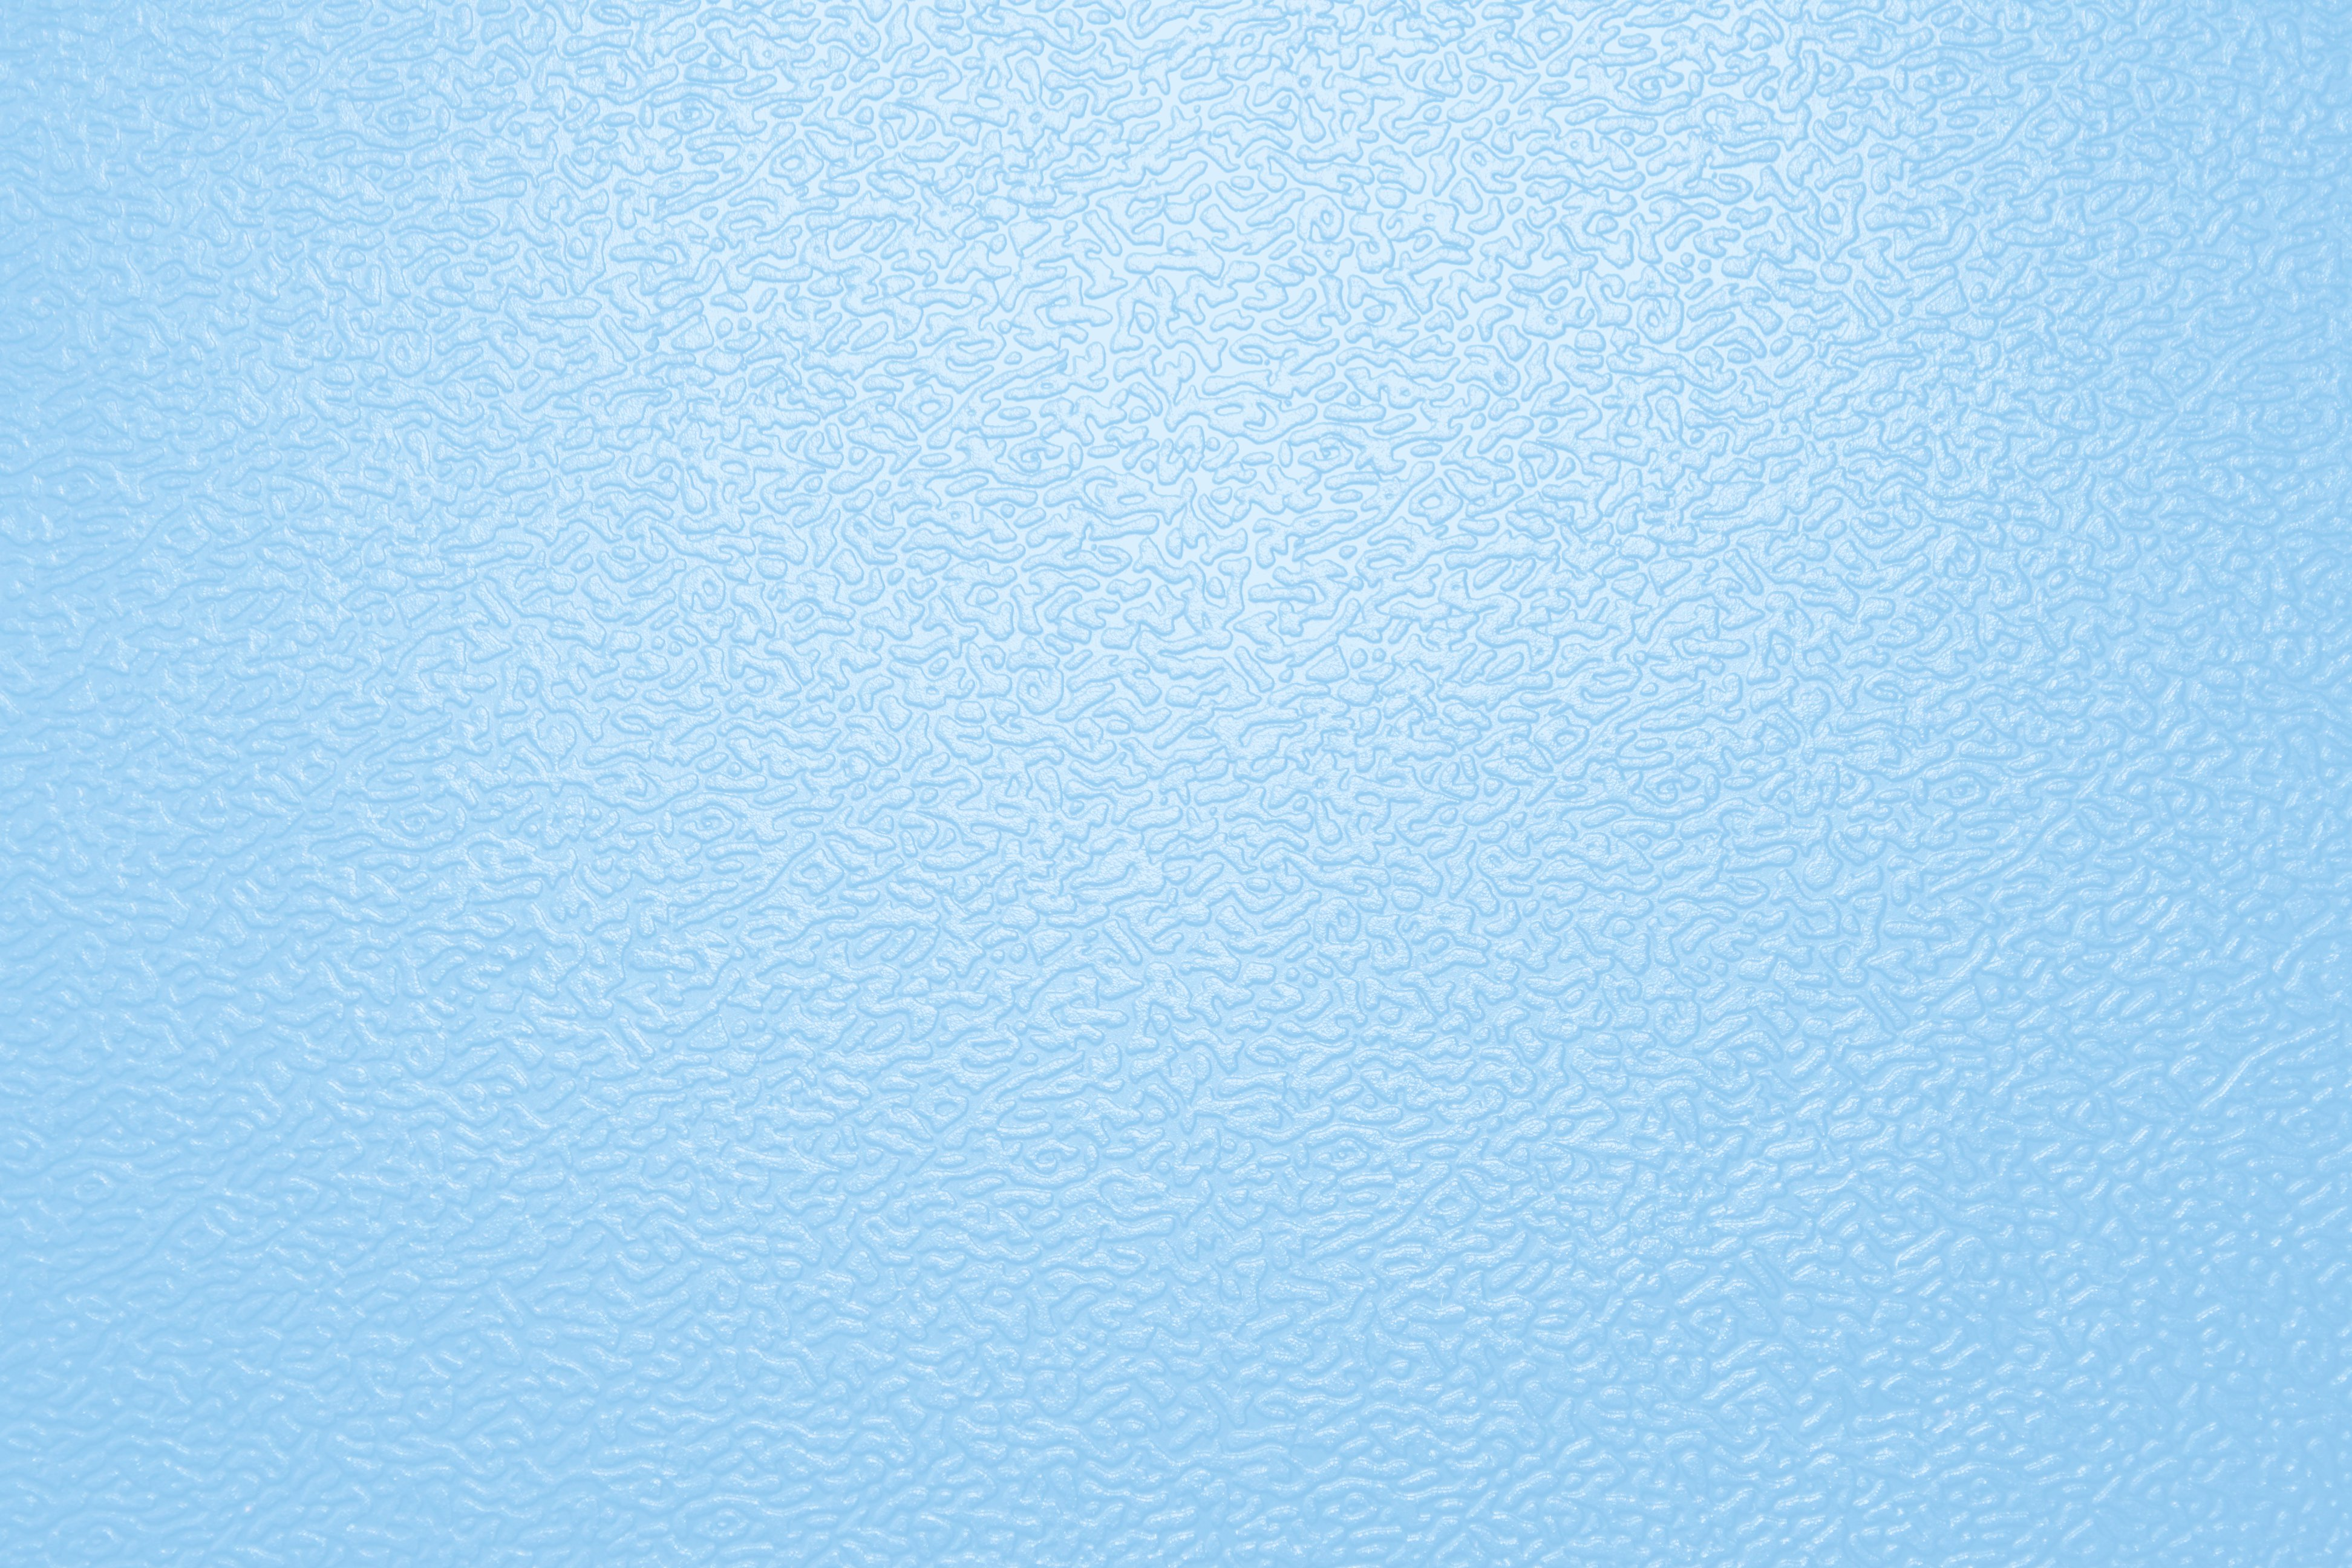 Textured Baby Blue Plastic Close Up Picture Free